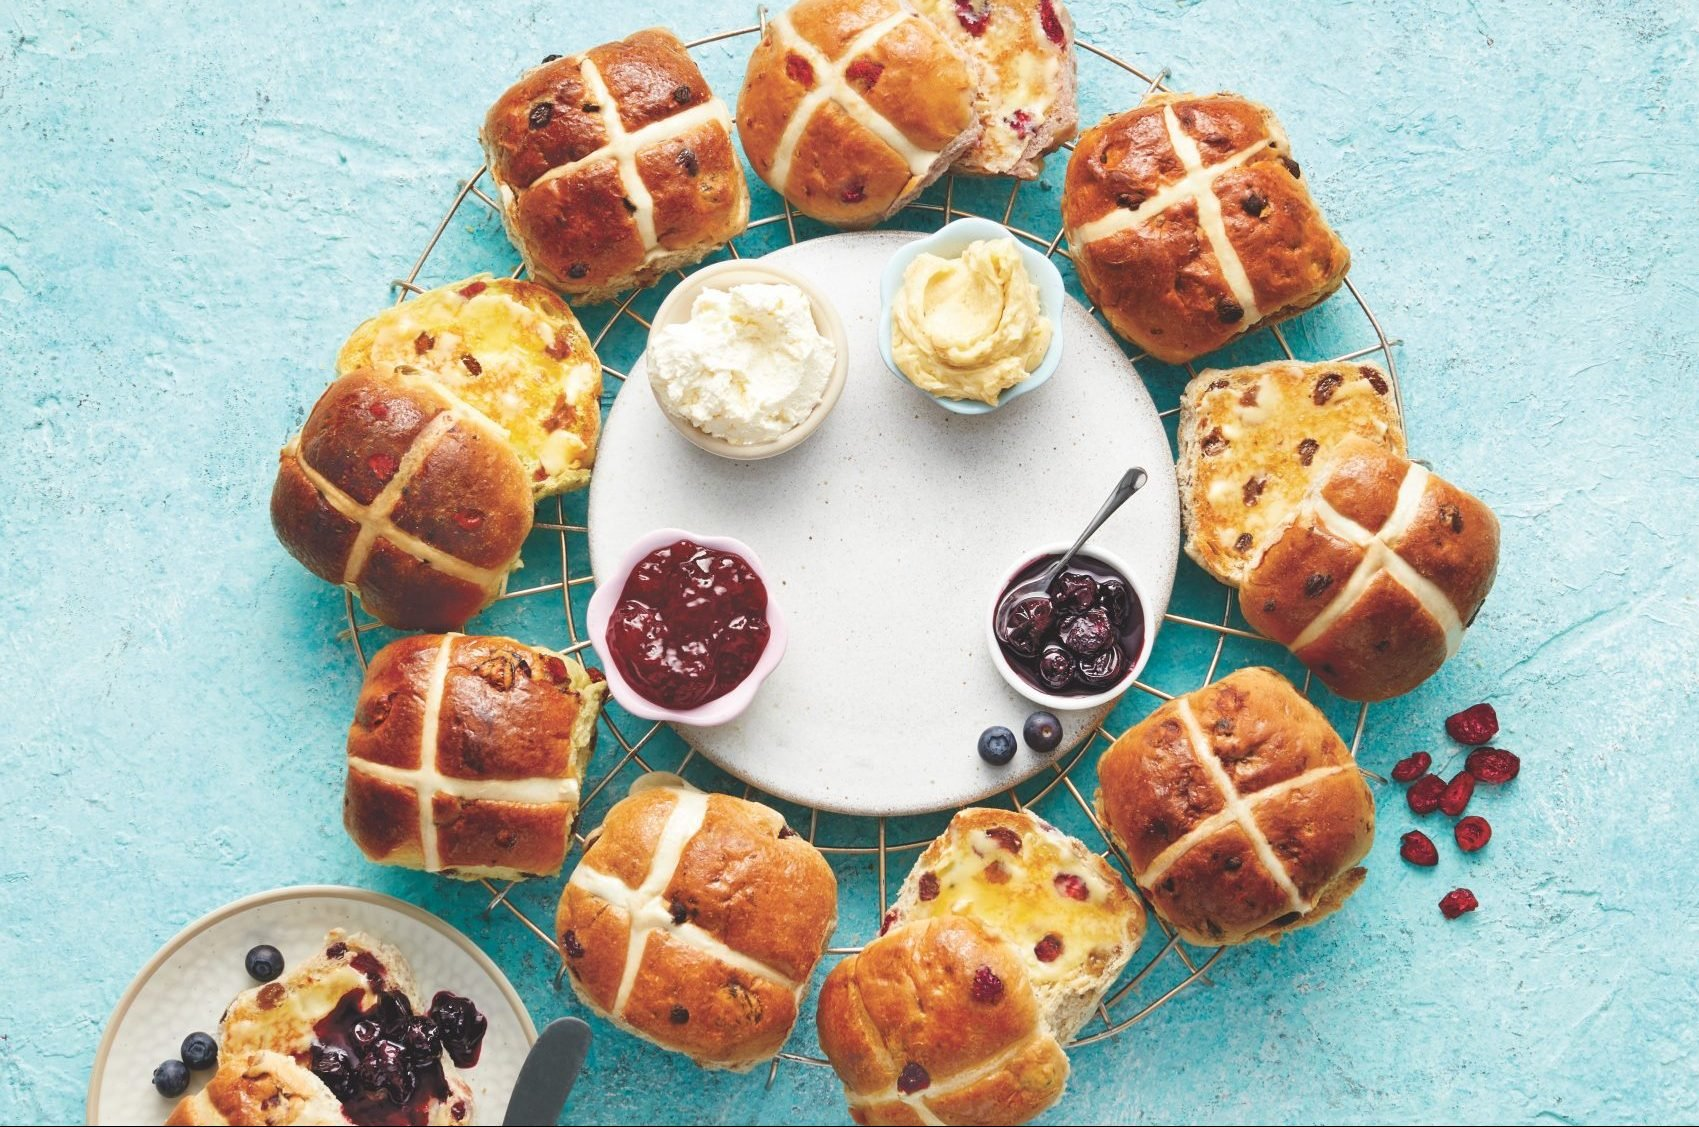 Aldi launches EIGHT different types of hot cross bun including salted caramel and sticky toffee pudding flavours